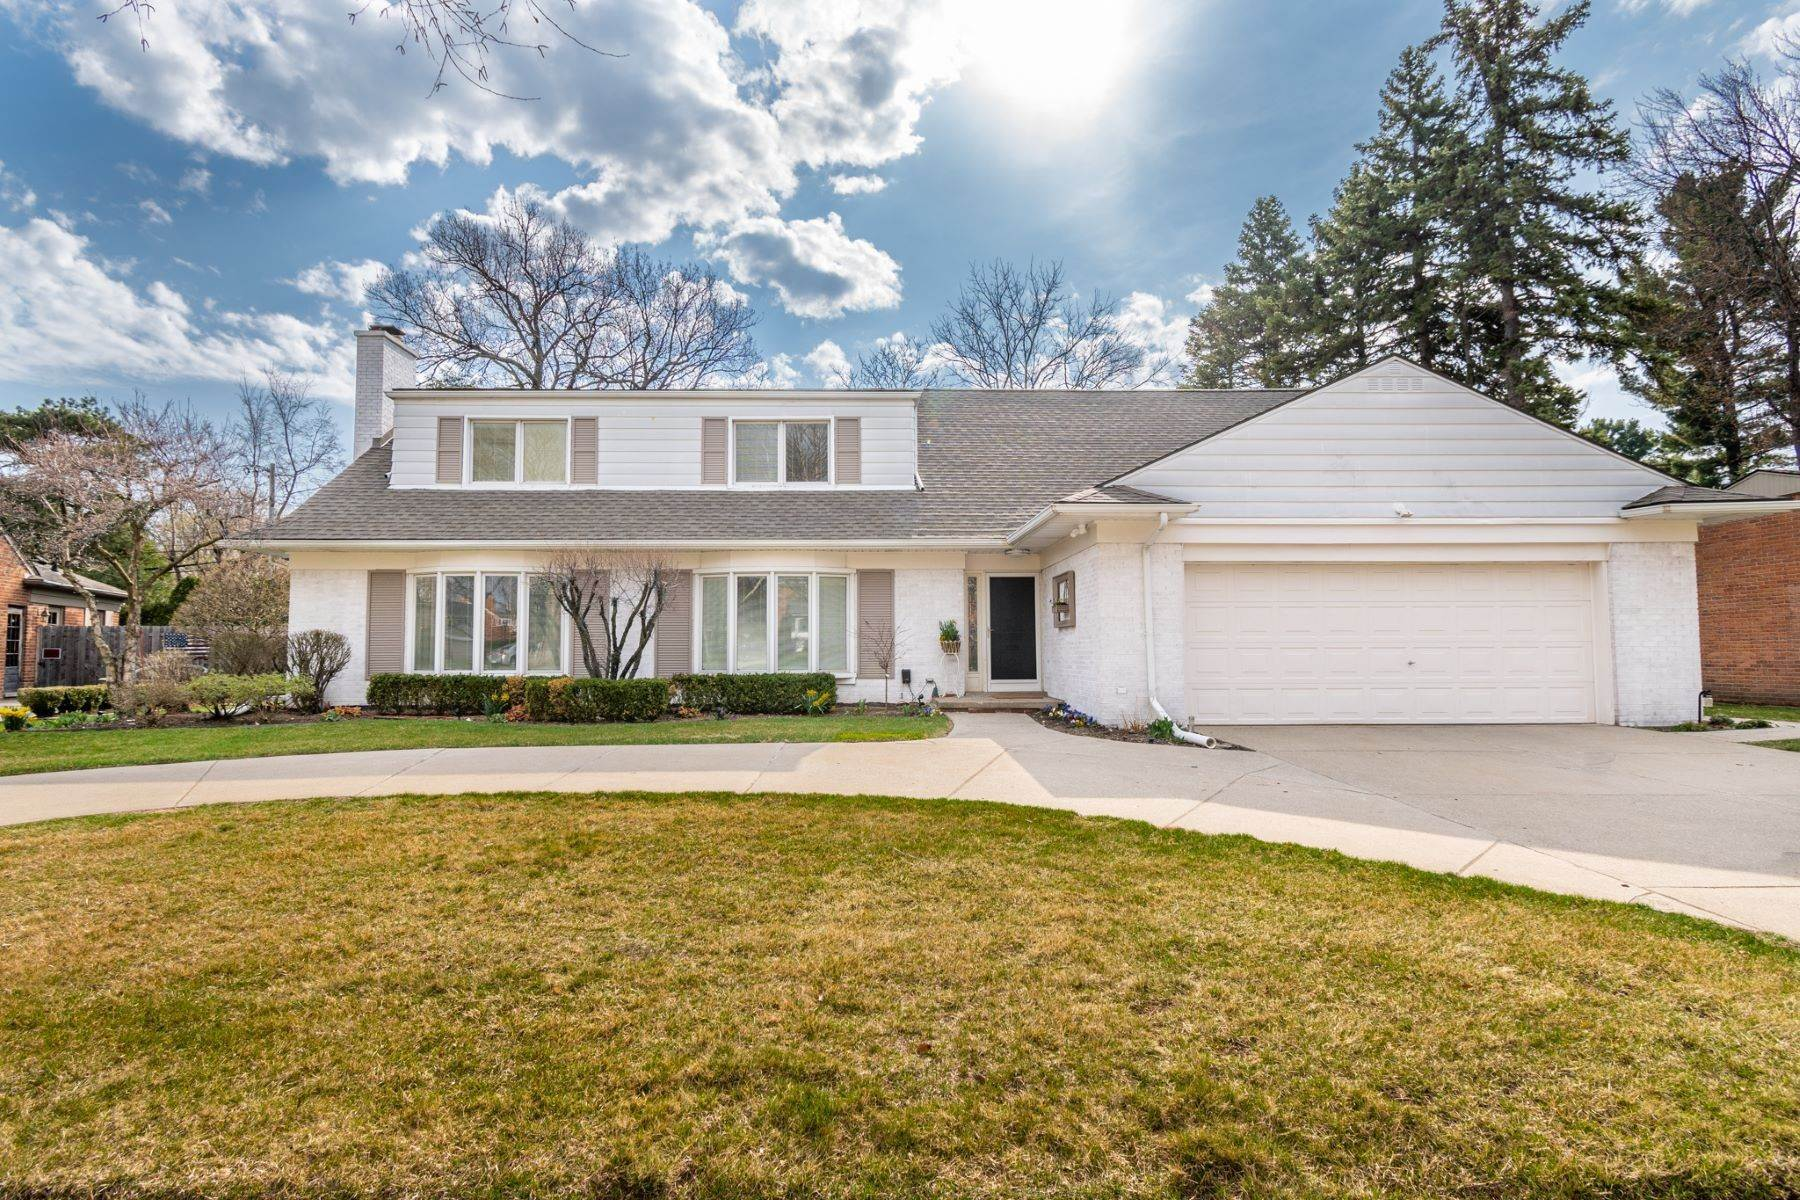 Single Family Homes for Sale at Grosse Pointe Woods 552 Thorntree Rd, Grosse Pointe Woods, Michigan 48236 United States